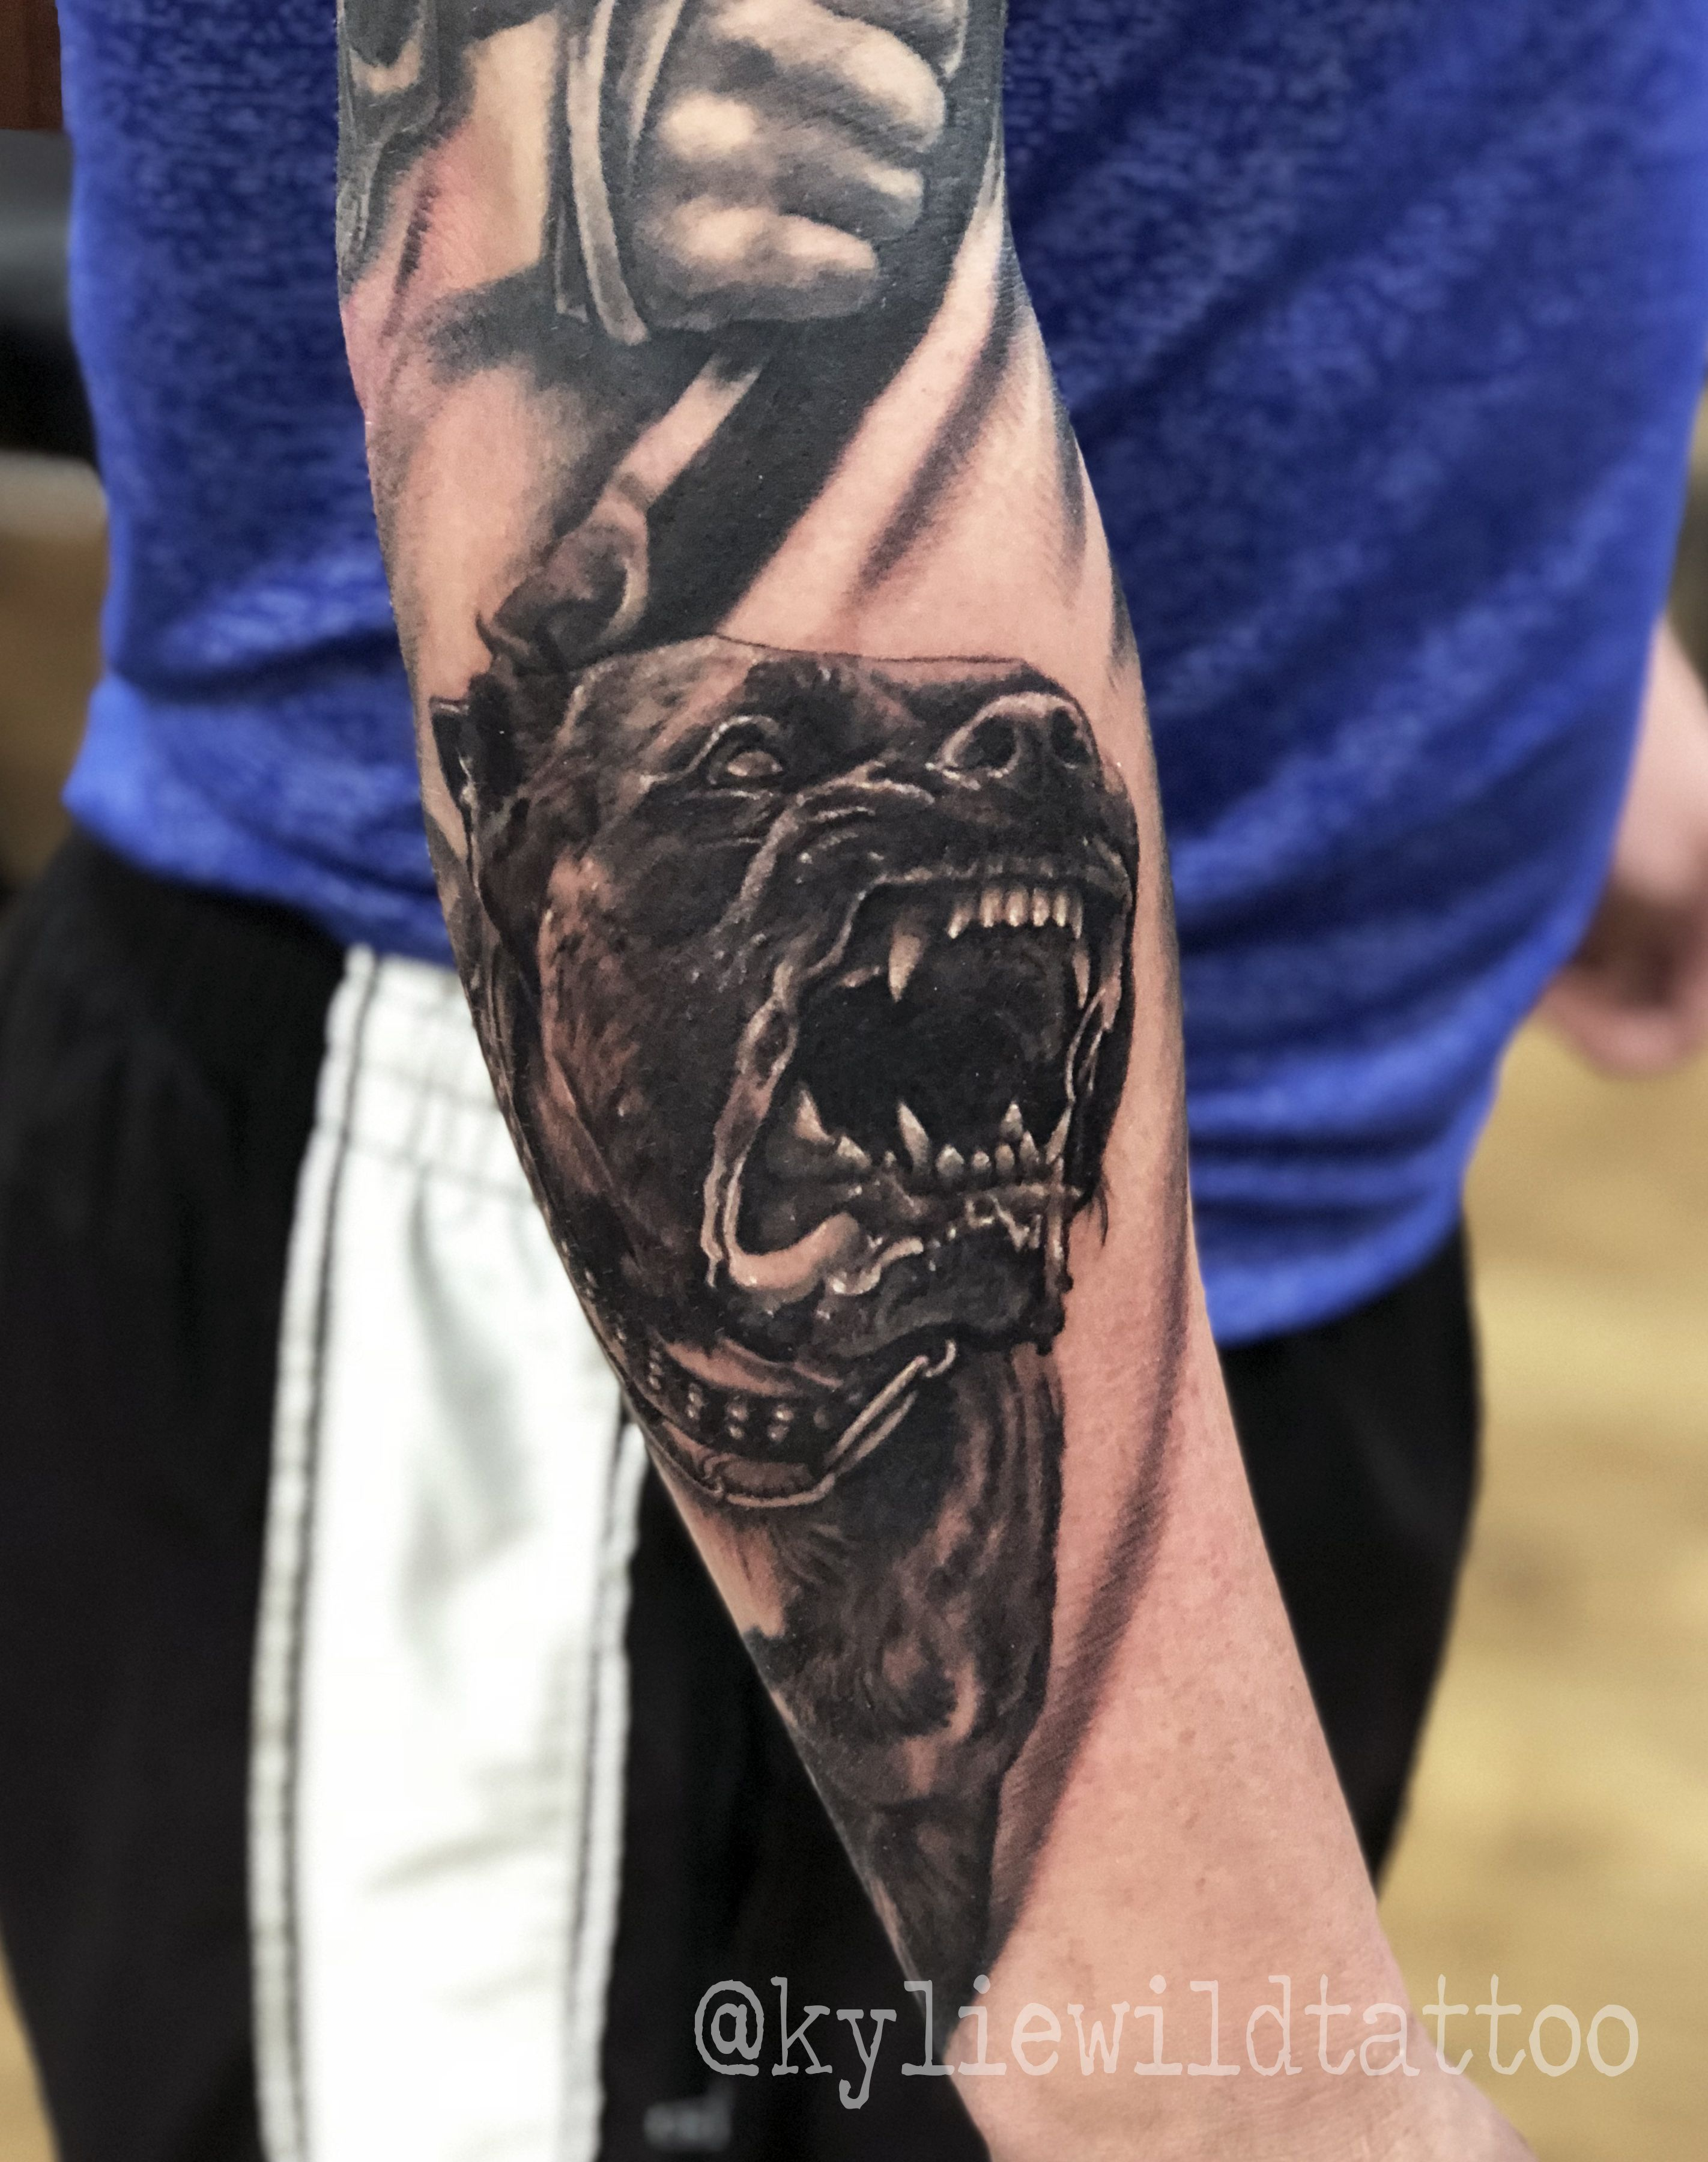 Angry Pitbull Realistic Tattoo Forearm Black And Grey By Kylie Wild Heslop Canberra Australia Based Tat Tatuagem De Pitbull Tatuagem De Gorila Tattoo Pitbull